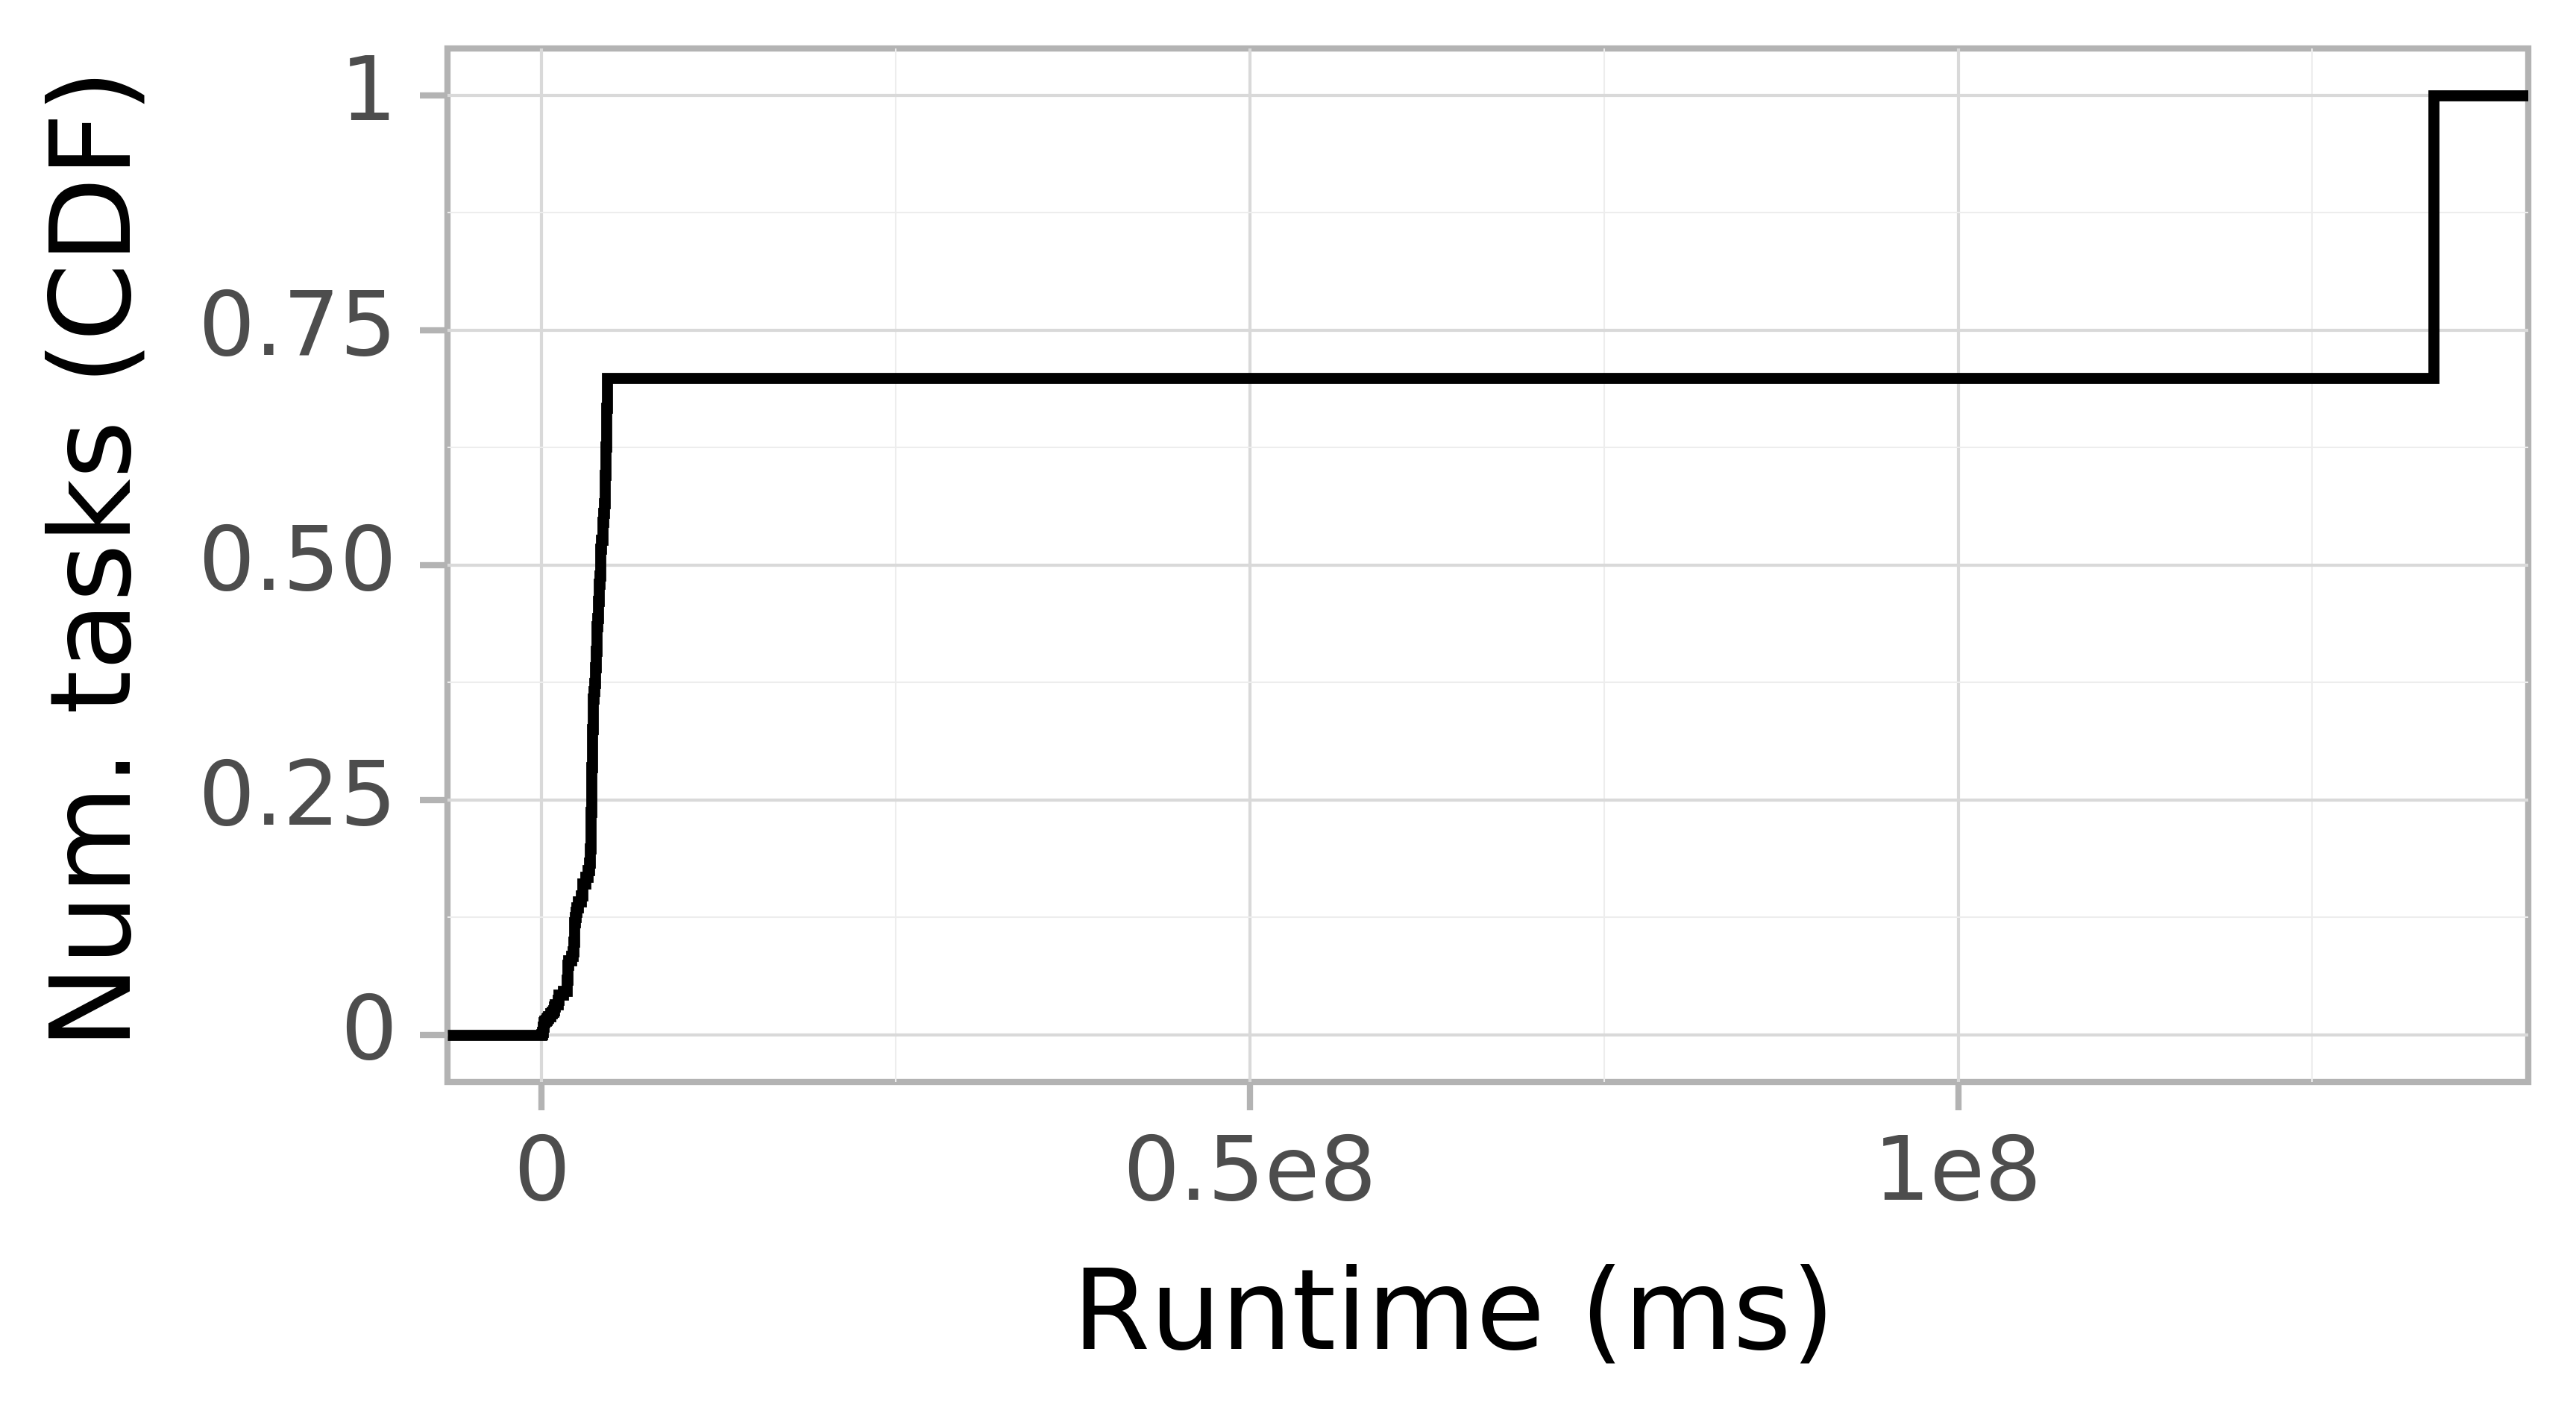 Task runtime CDF graph for the Pegasus_P7 trace.